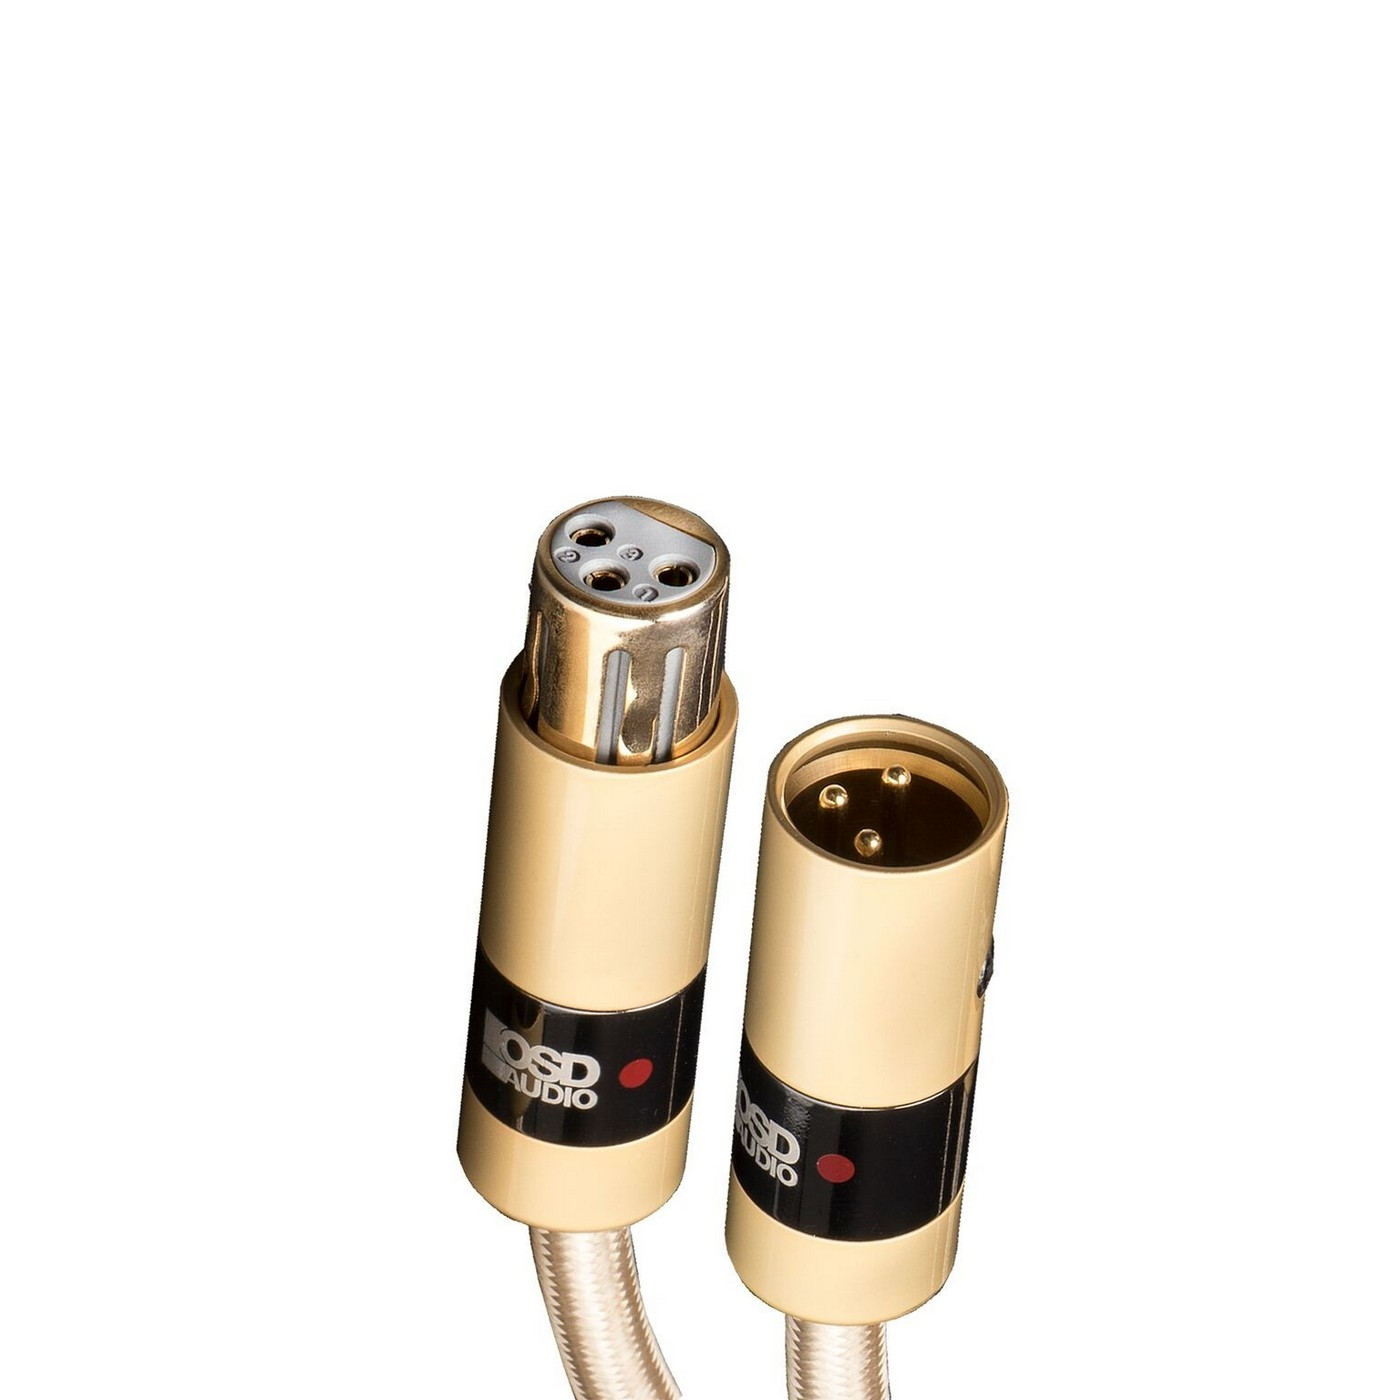 Aurum Series Ultra High Performance Premium Balanced Xlr Cables For Cable Wiring Guide End Audio Home Theater Systems Pure Copper Connectors And Heavy Duty Shield